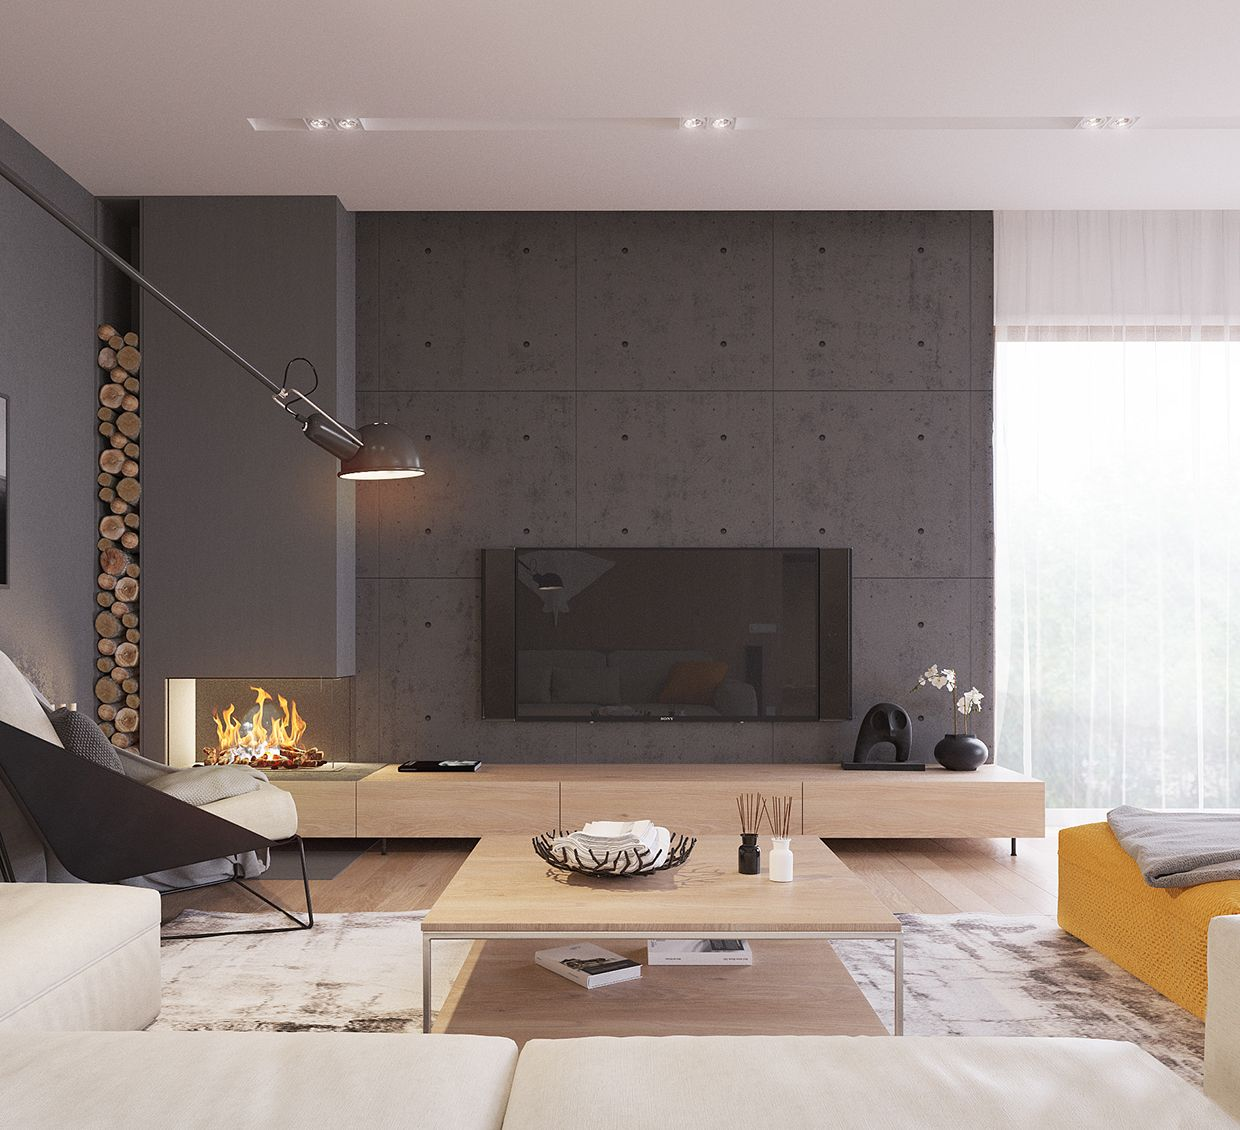 Interior Design For A House In A Modern Minimal Scandinavian Style For Young Coup Modern Scandinavian Bedroom Design Scandinavian Design Bedroom Bedroom Design